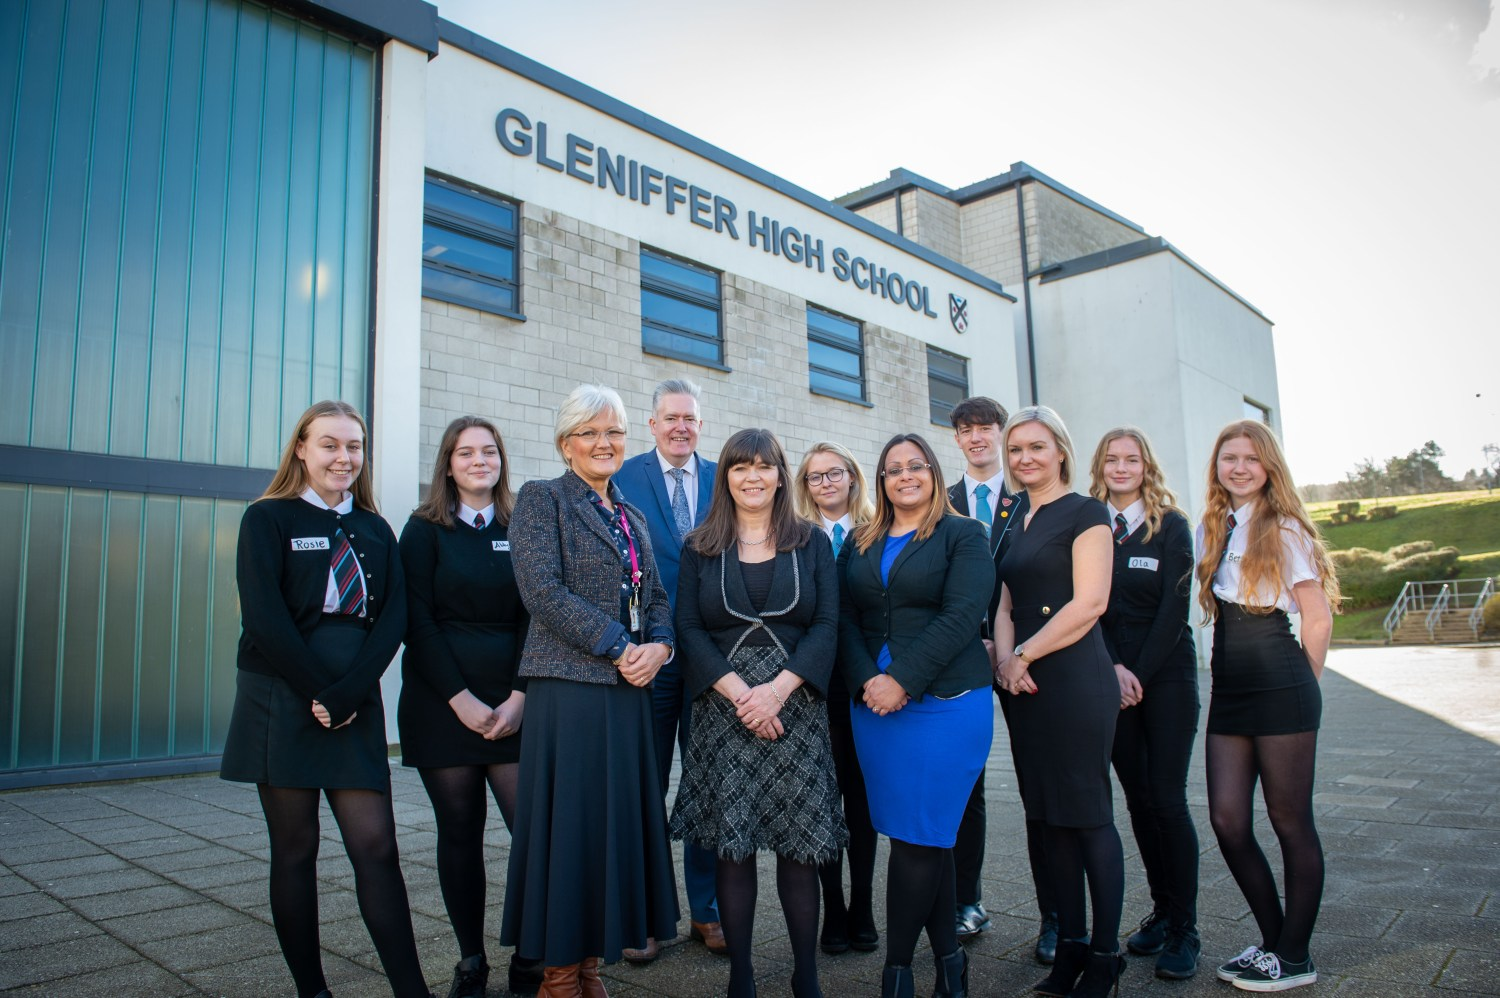 Gleniffer High